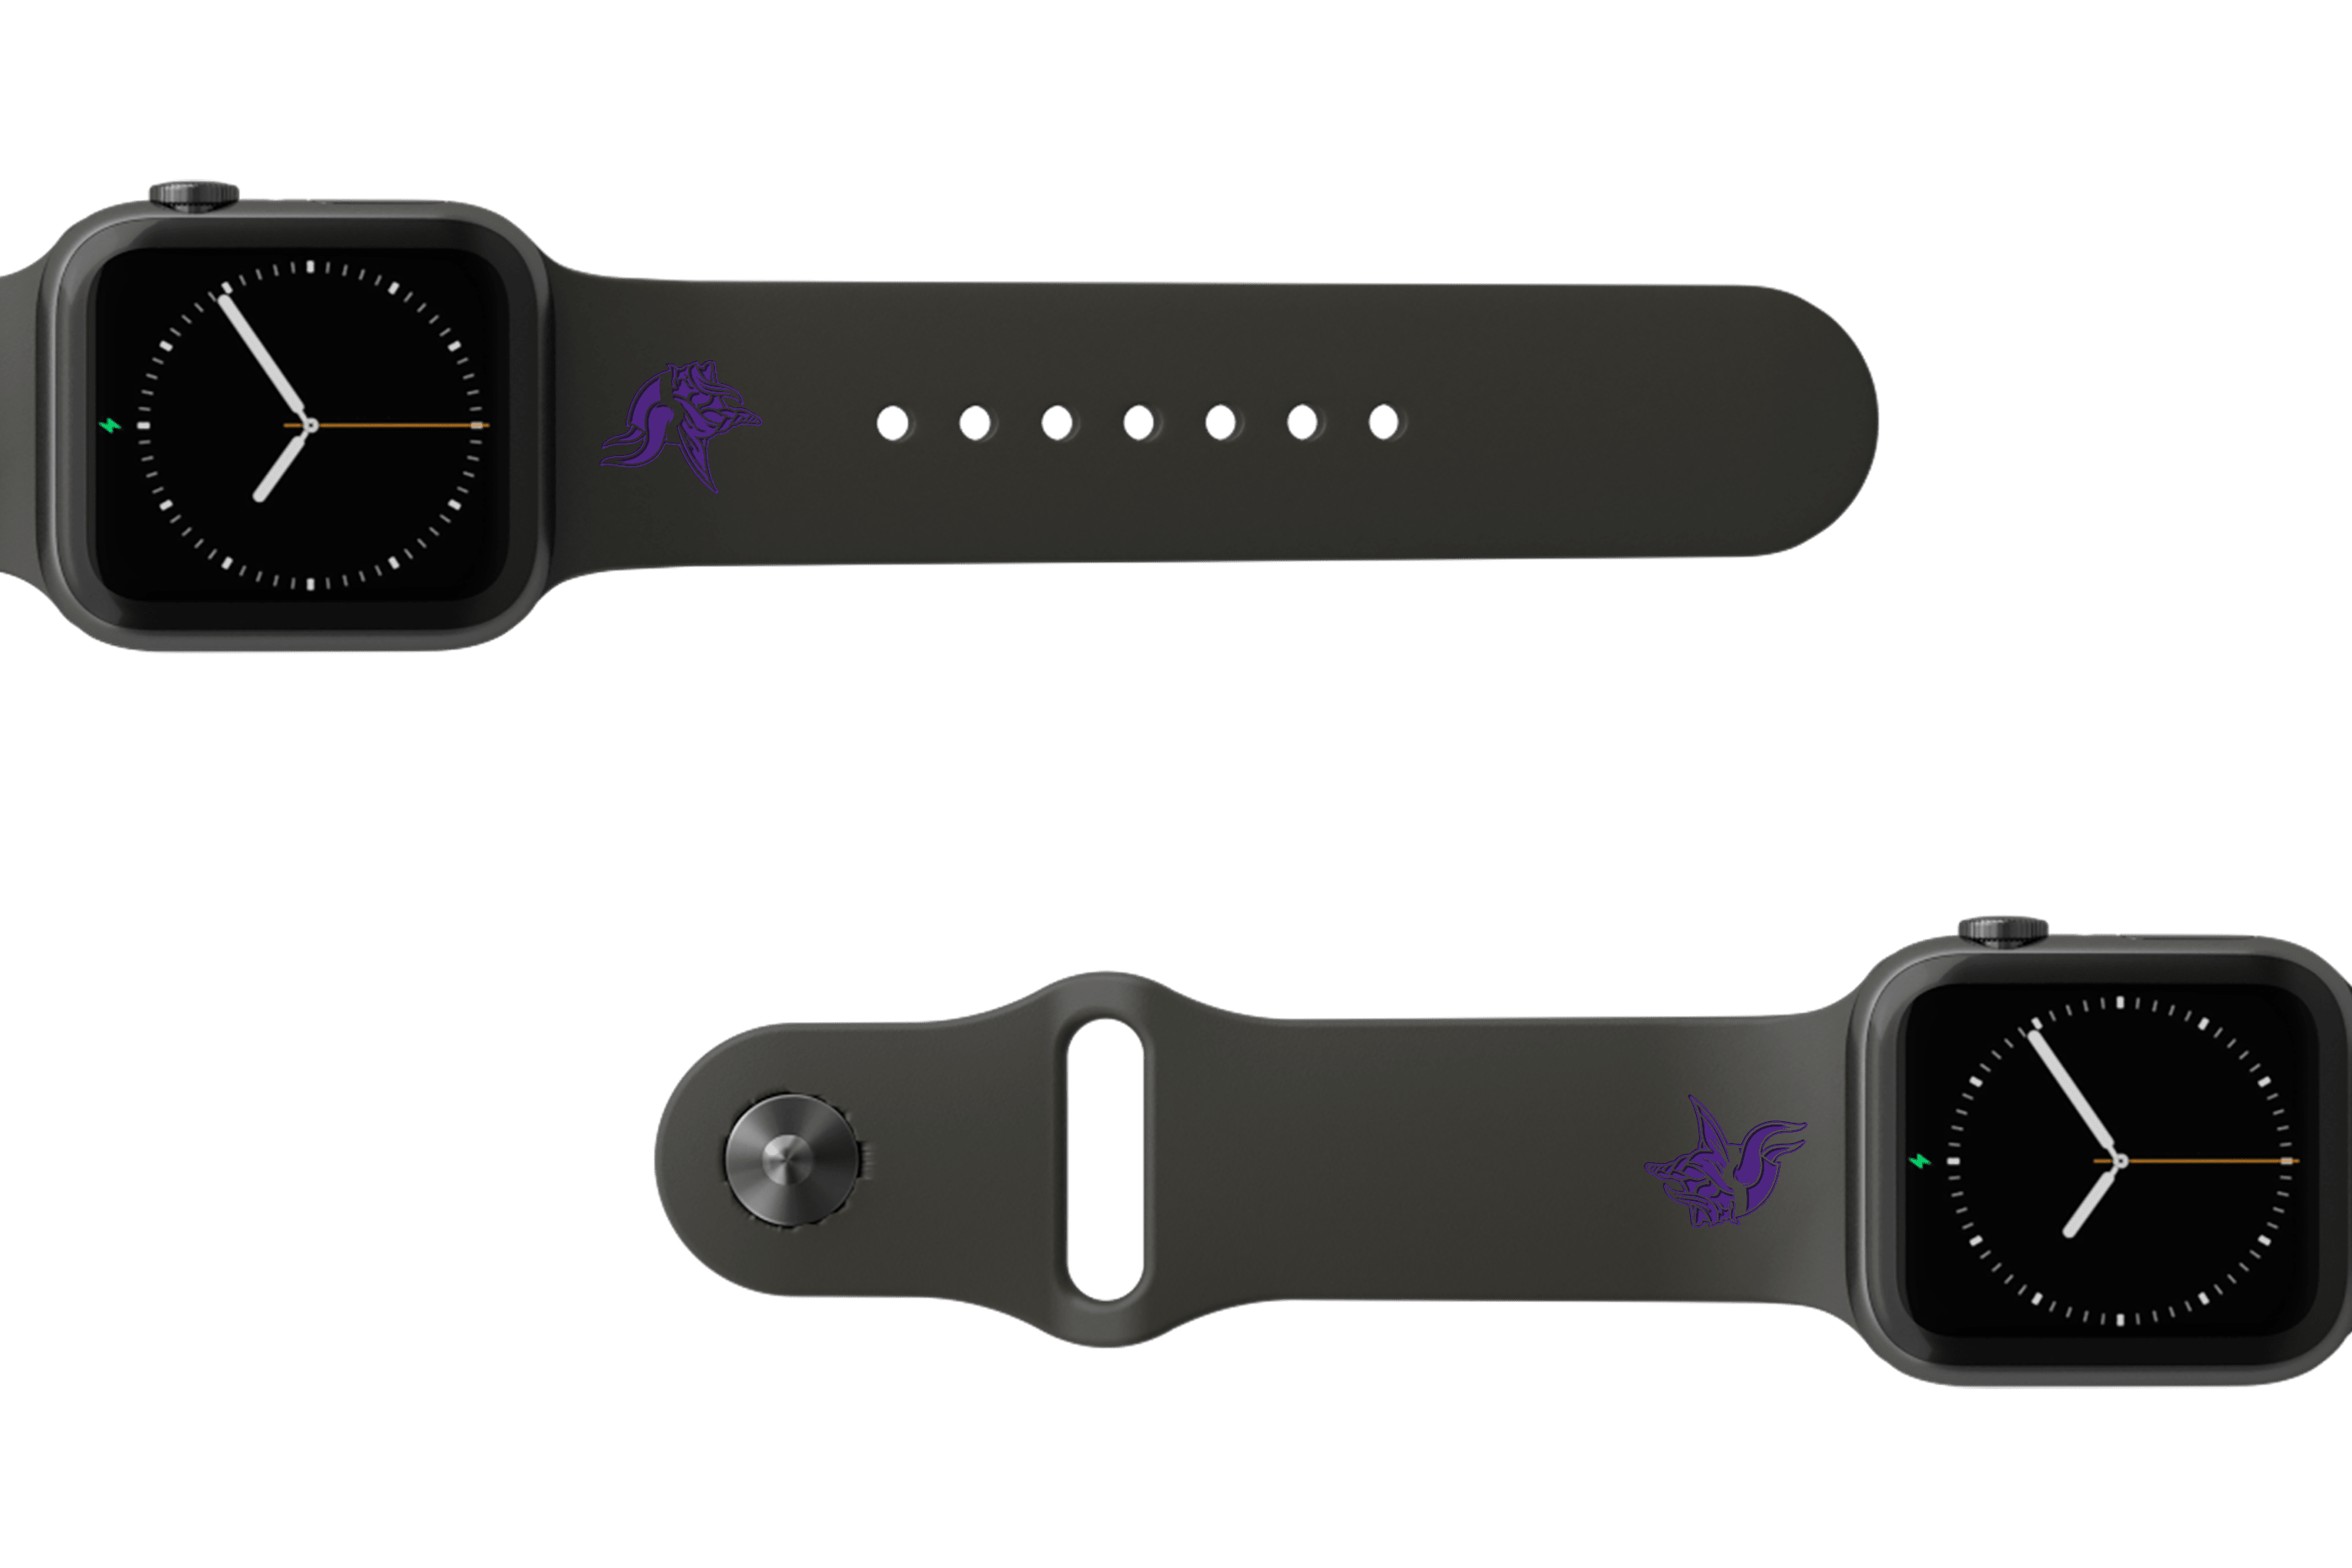 NFL Minnesota Vikings Black  apple watch band with gray hardware viewed from top down